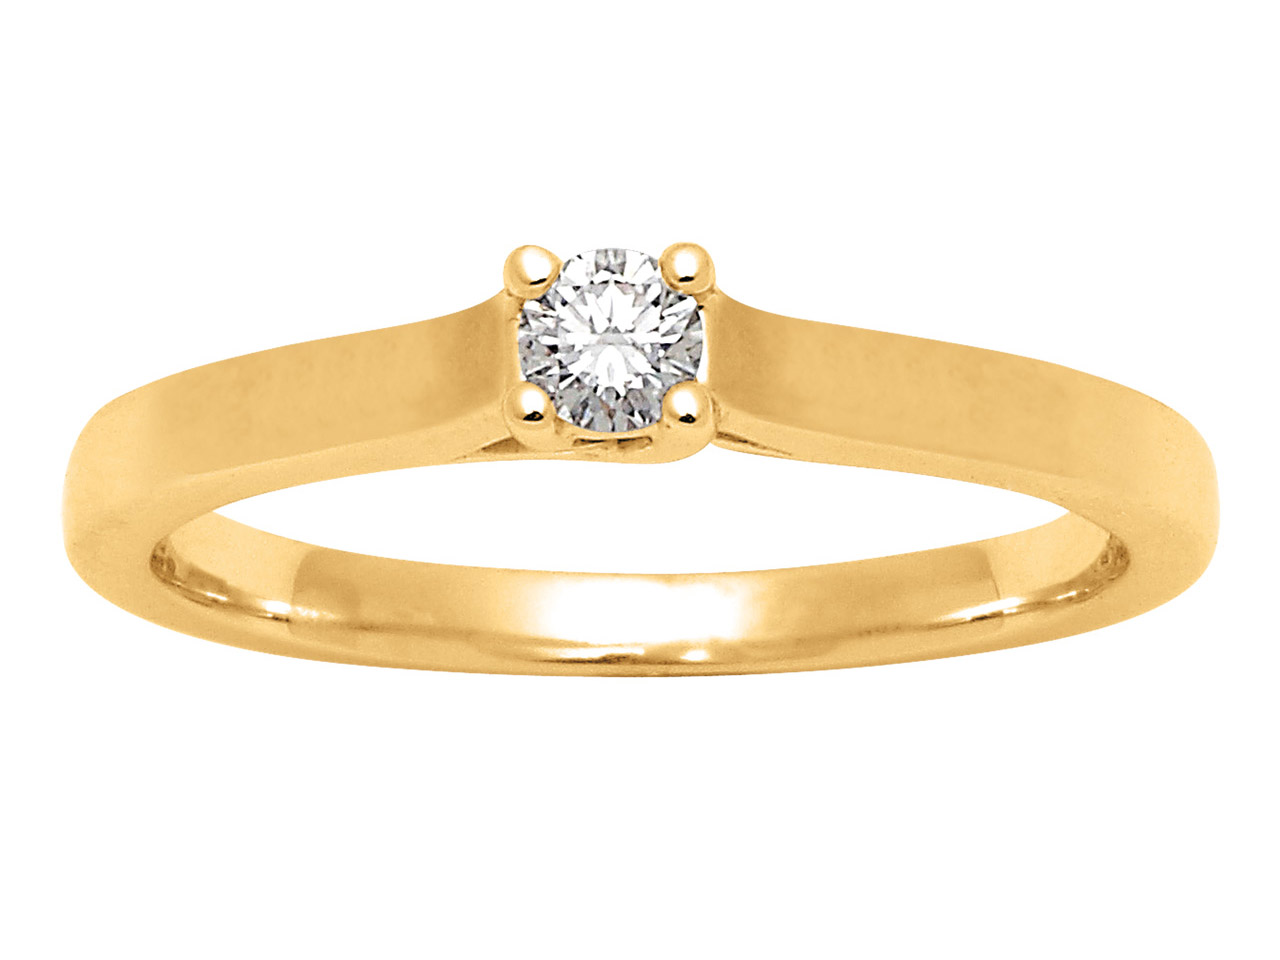 Solitaire Or jaune 18 k, Dts 0,10 ct, doigt 50